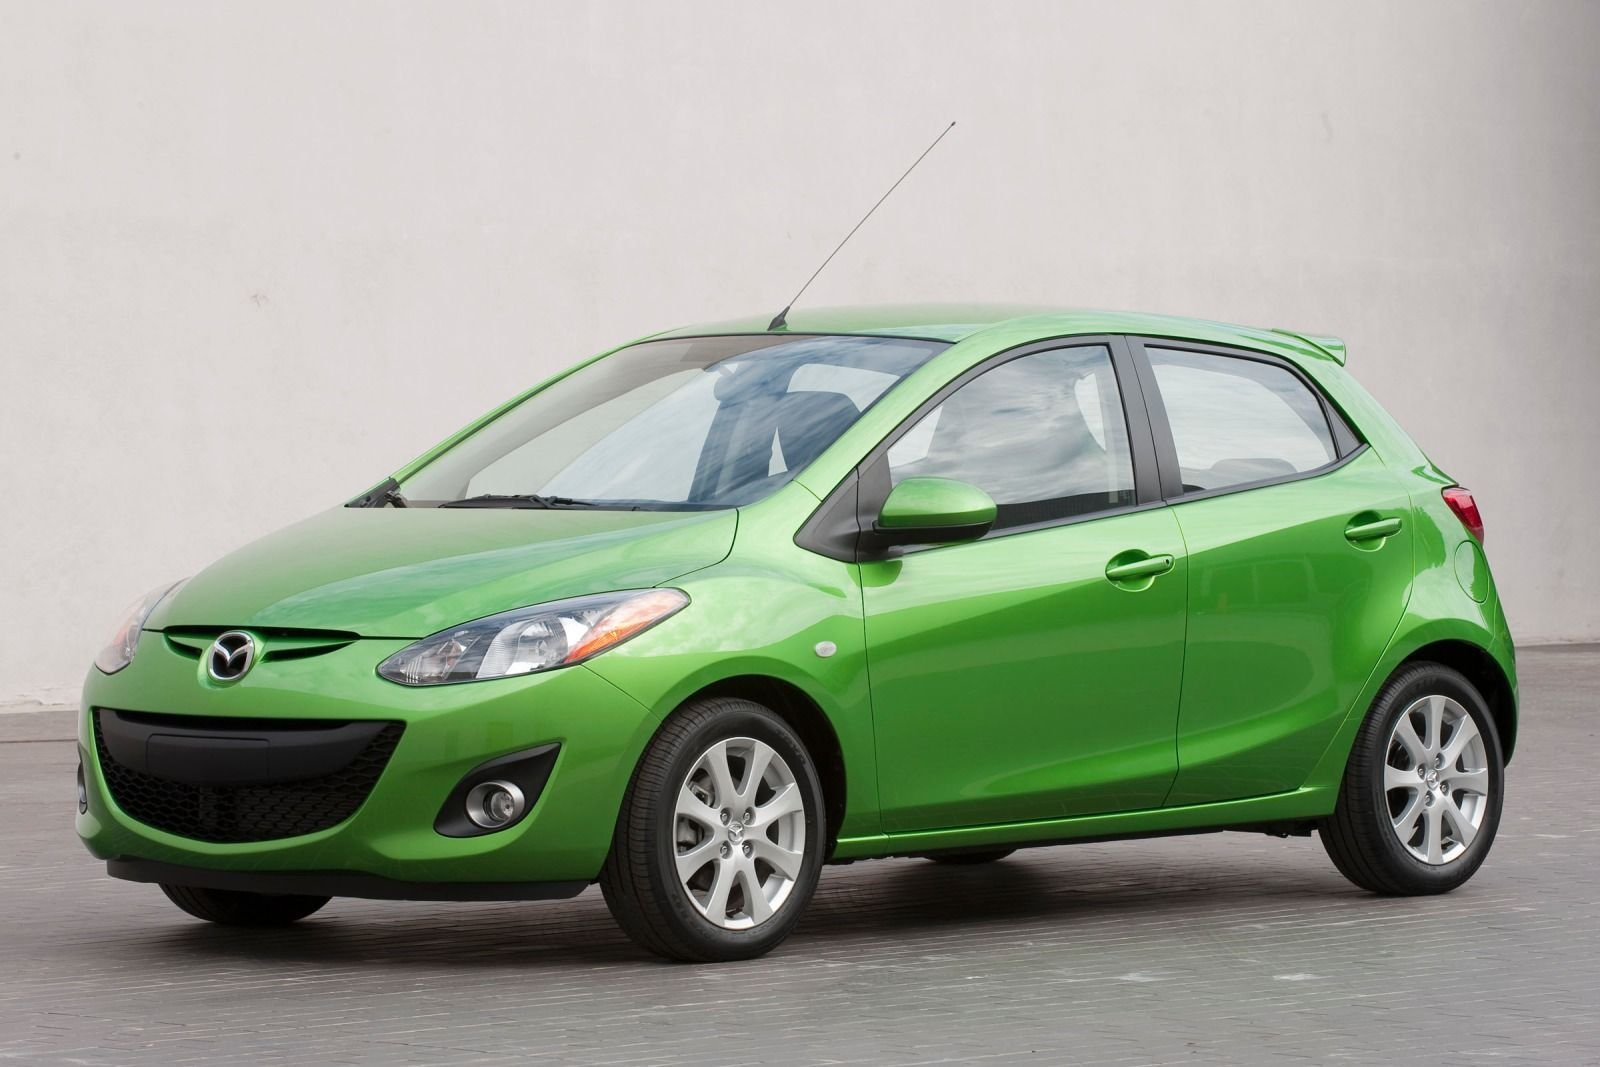 The Mazda 2 Is A 4 Door Hatch In The Compact Car Class Built From 2011 2016 Mazda Mazda 2 Best Convertible Car Seat